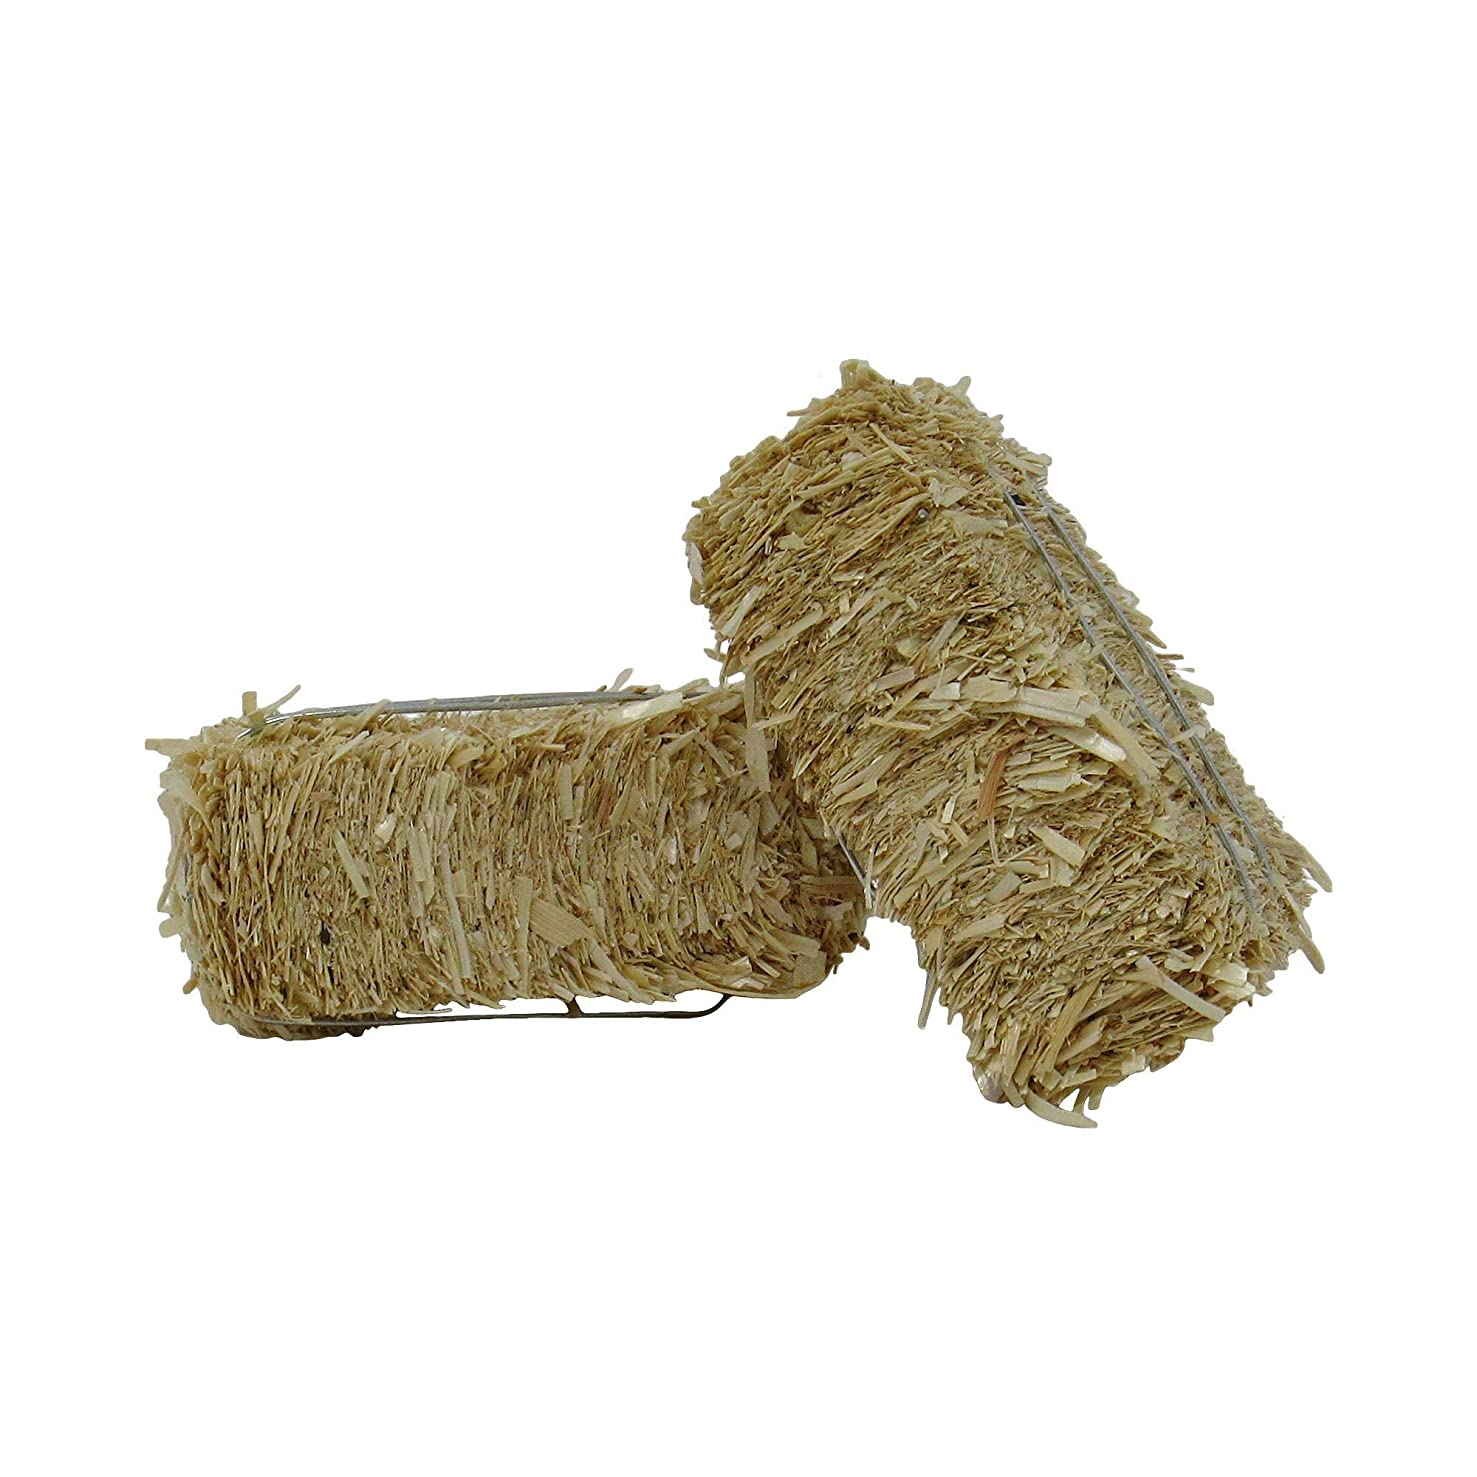 Package of 2 Ultra Mini Hay Bales Made of Real Dried Straw for Crafting, Embellishing and Creating